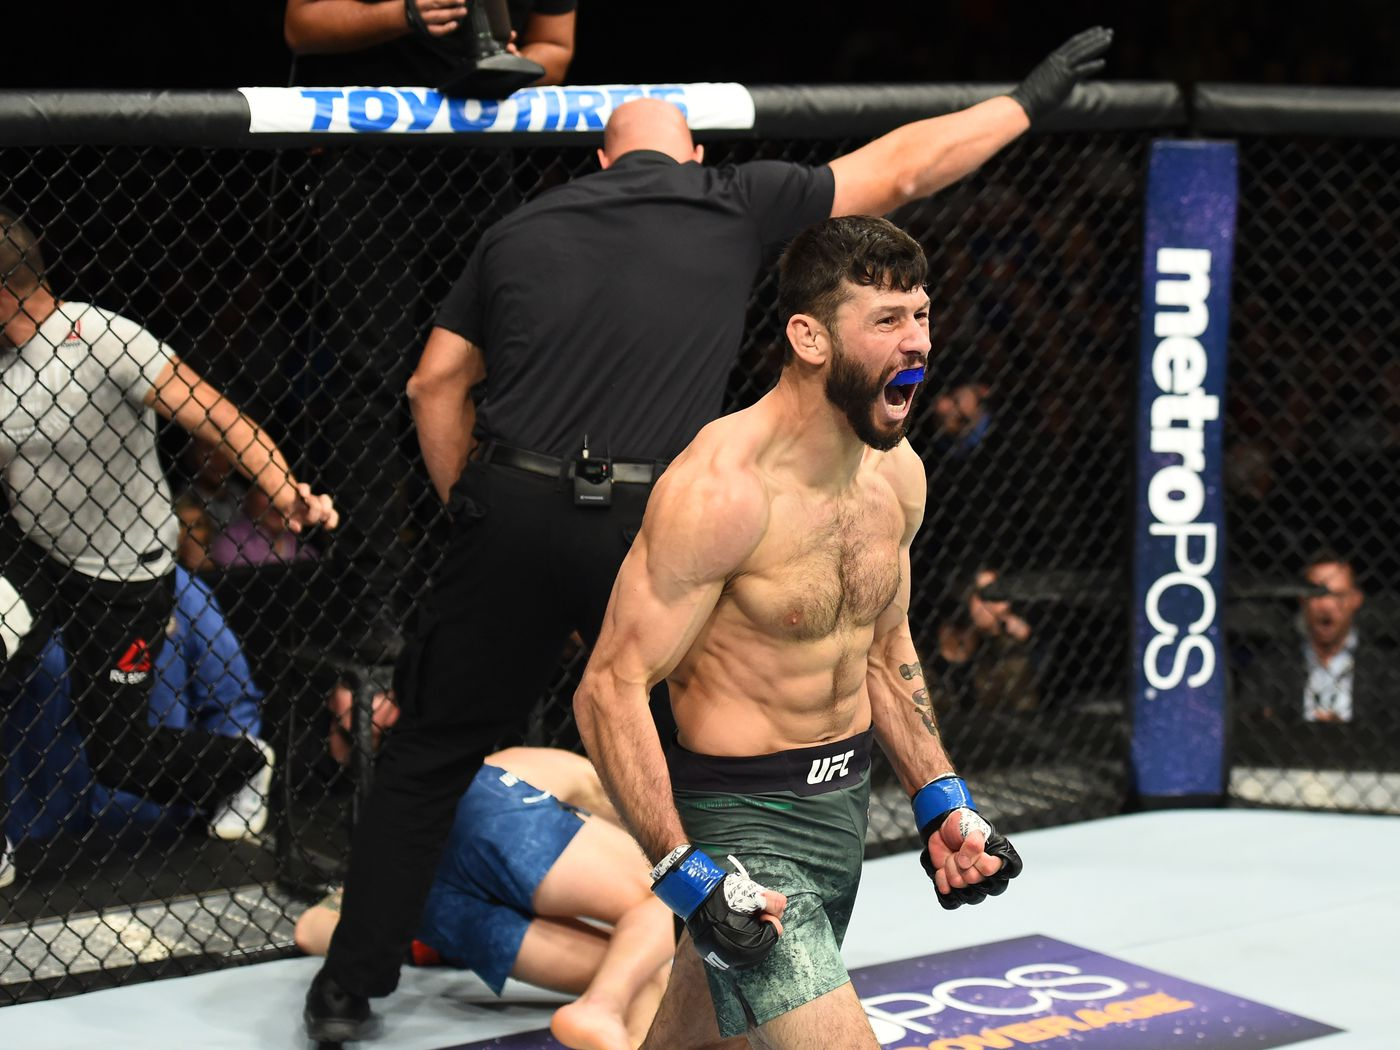 UFC St. Louis results and highlights: Big KO by Marco Polo Reyes ...